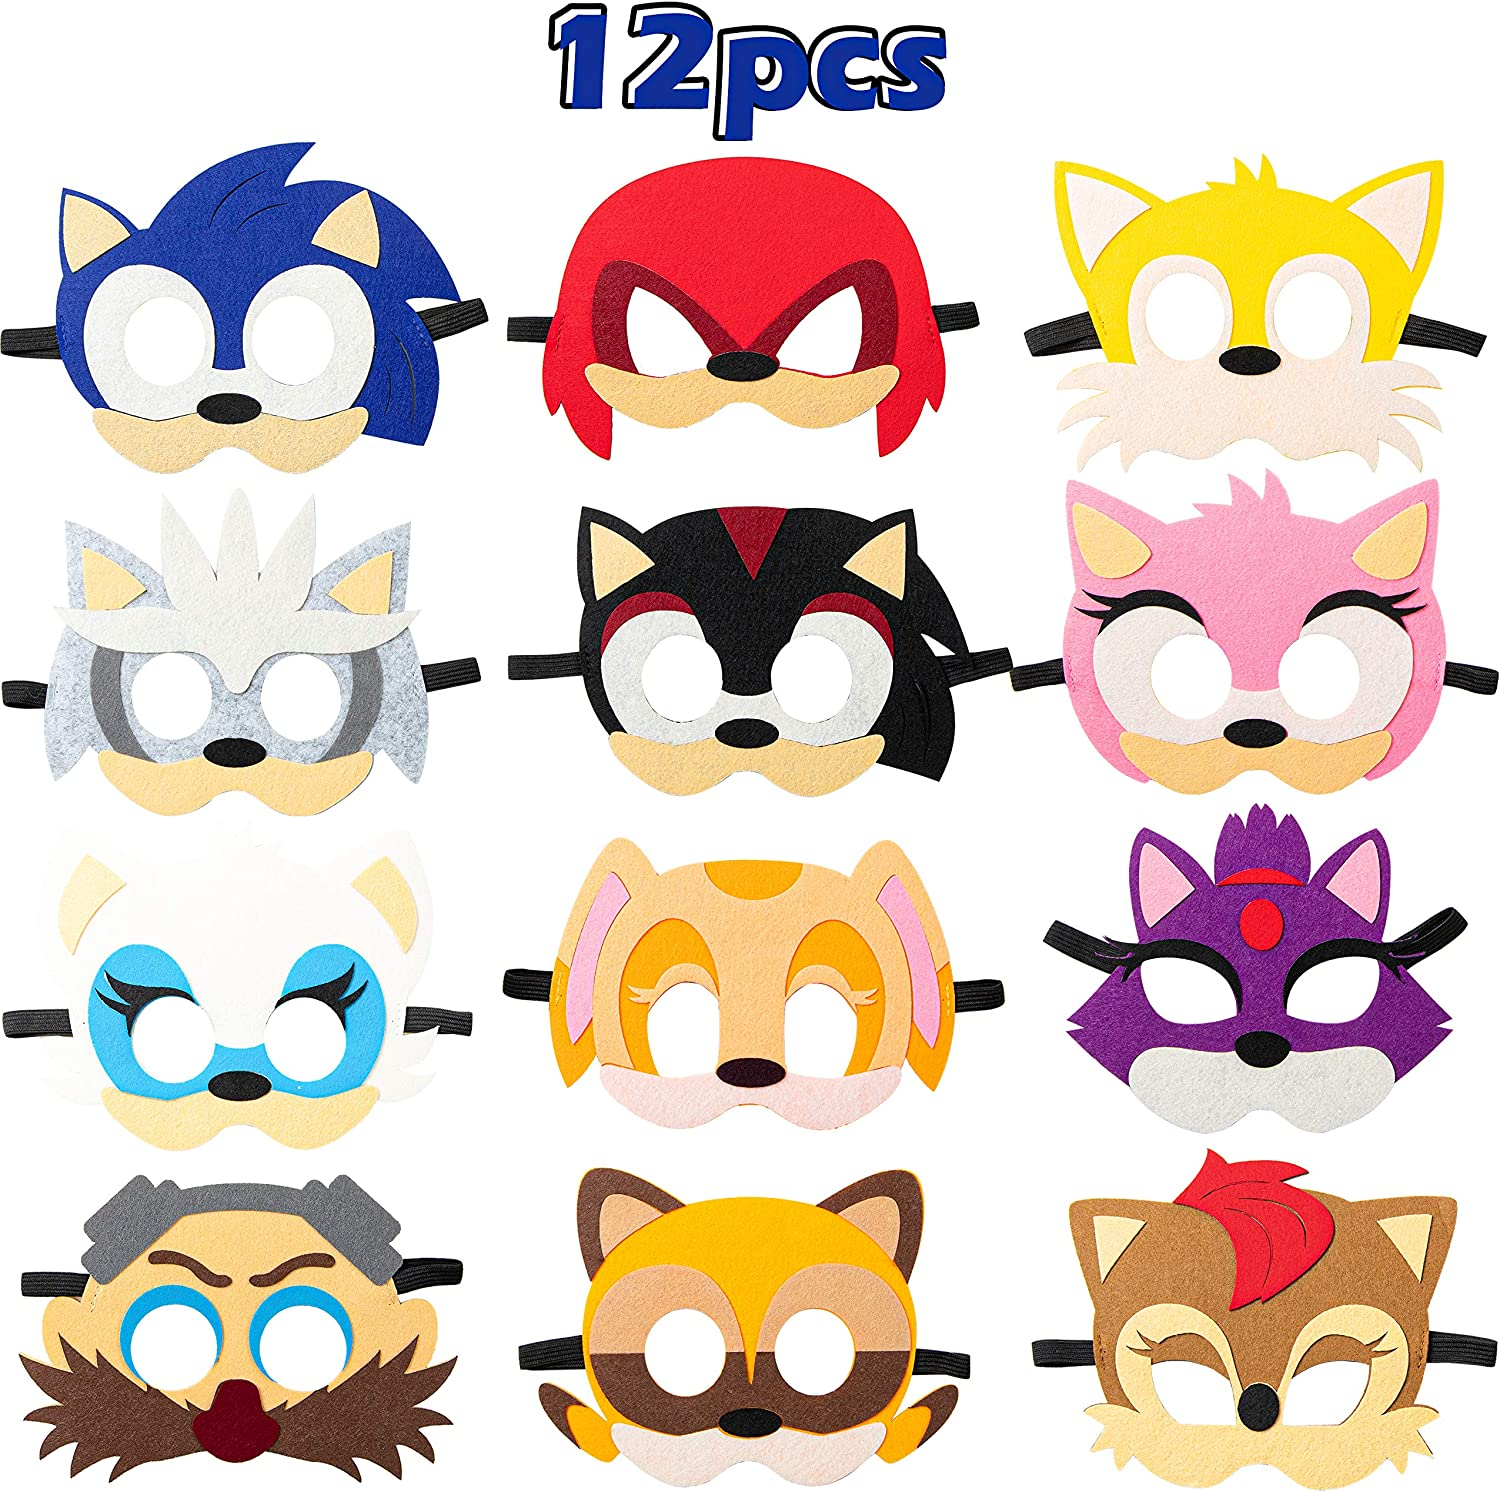 Amazon Com Salovio 12pcs Sonic Felt Masks Themed Party Supplies Birthday Hedgehog Party Favors Dress Up Costumes Mask Photo Booth Prop Cartoon Character Cosplay Pretend Play Accessories Gift For Kids Boys Girls Clothing